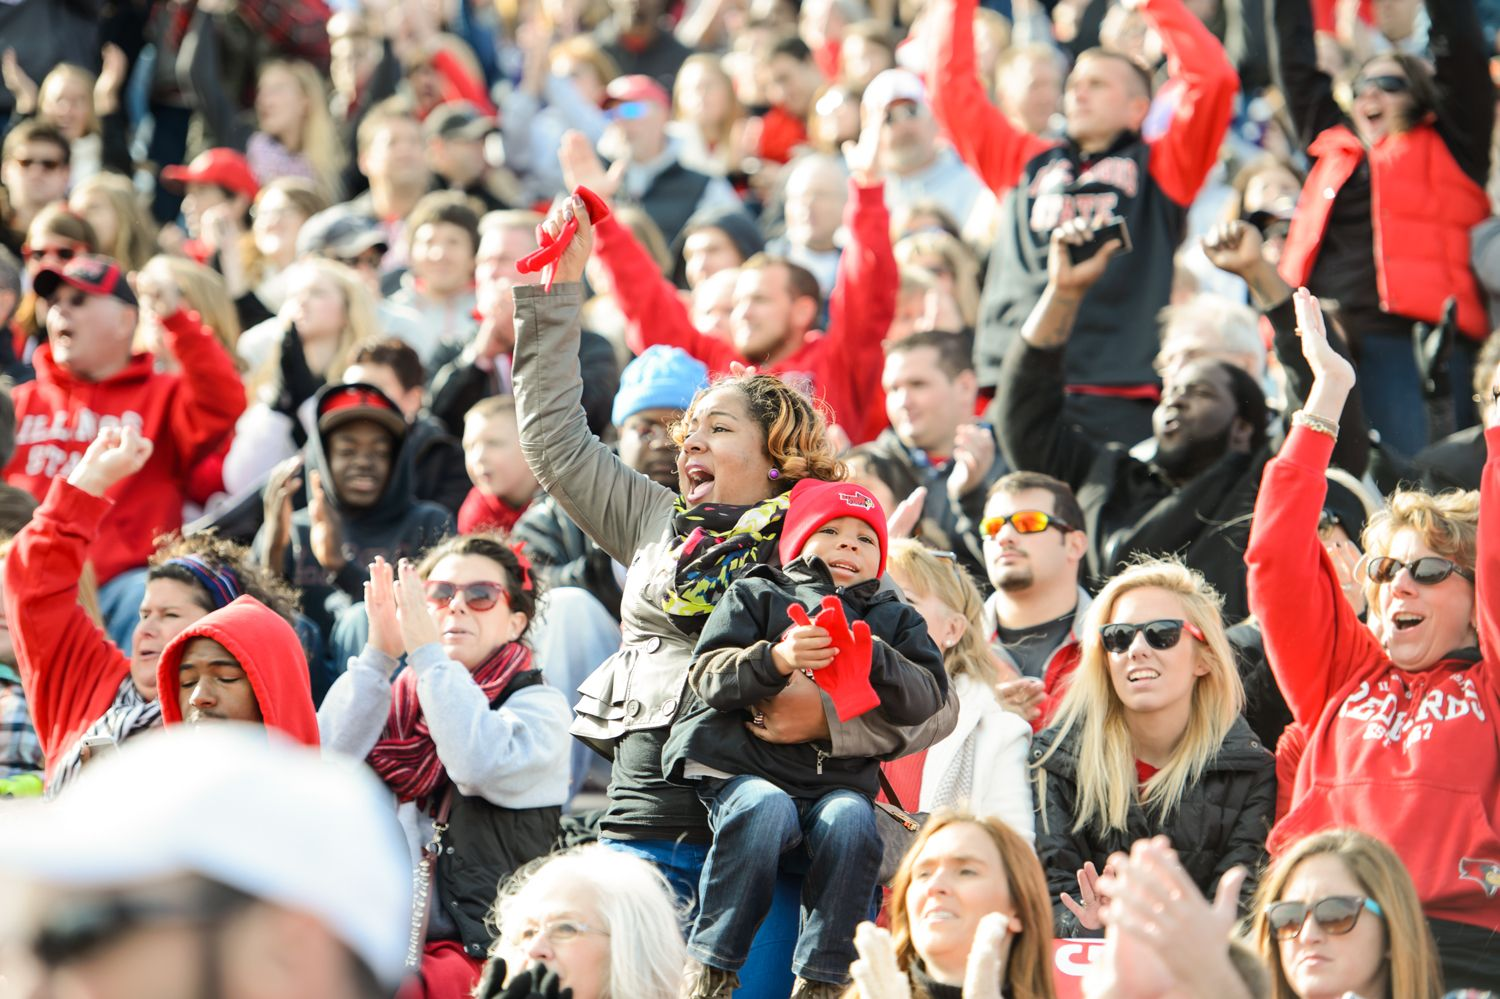 The Family Weekend crowd at Hancock Stadium on October 26, 2013.